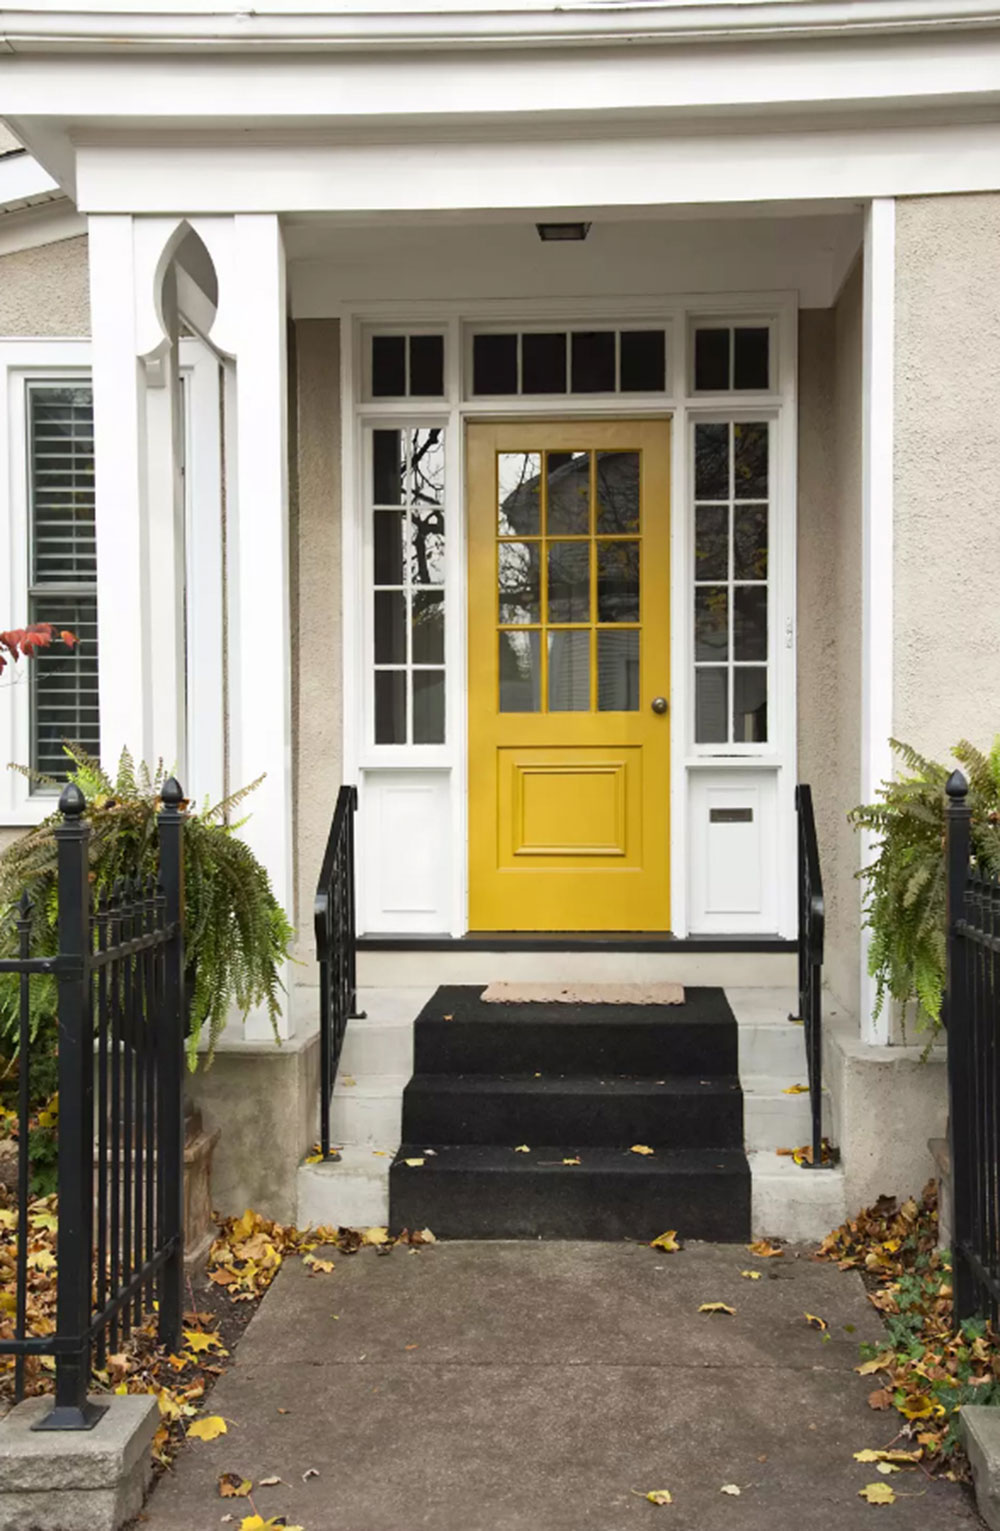 White-House-Yellow-Door Yellow front door Ideas for a lively house entrance